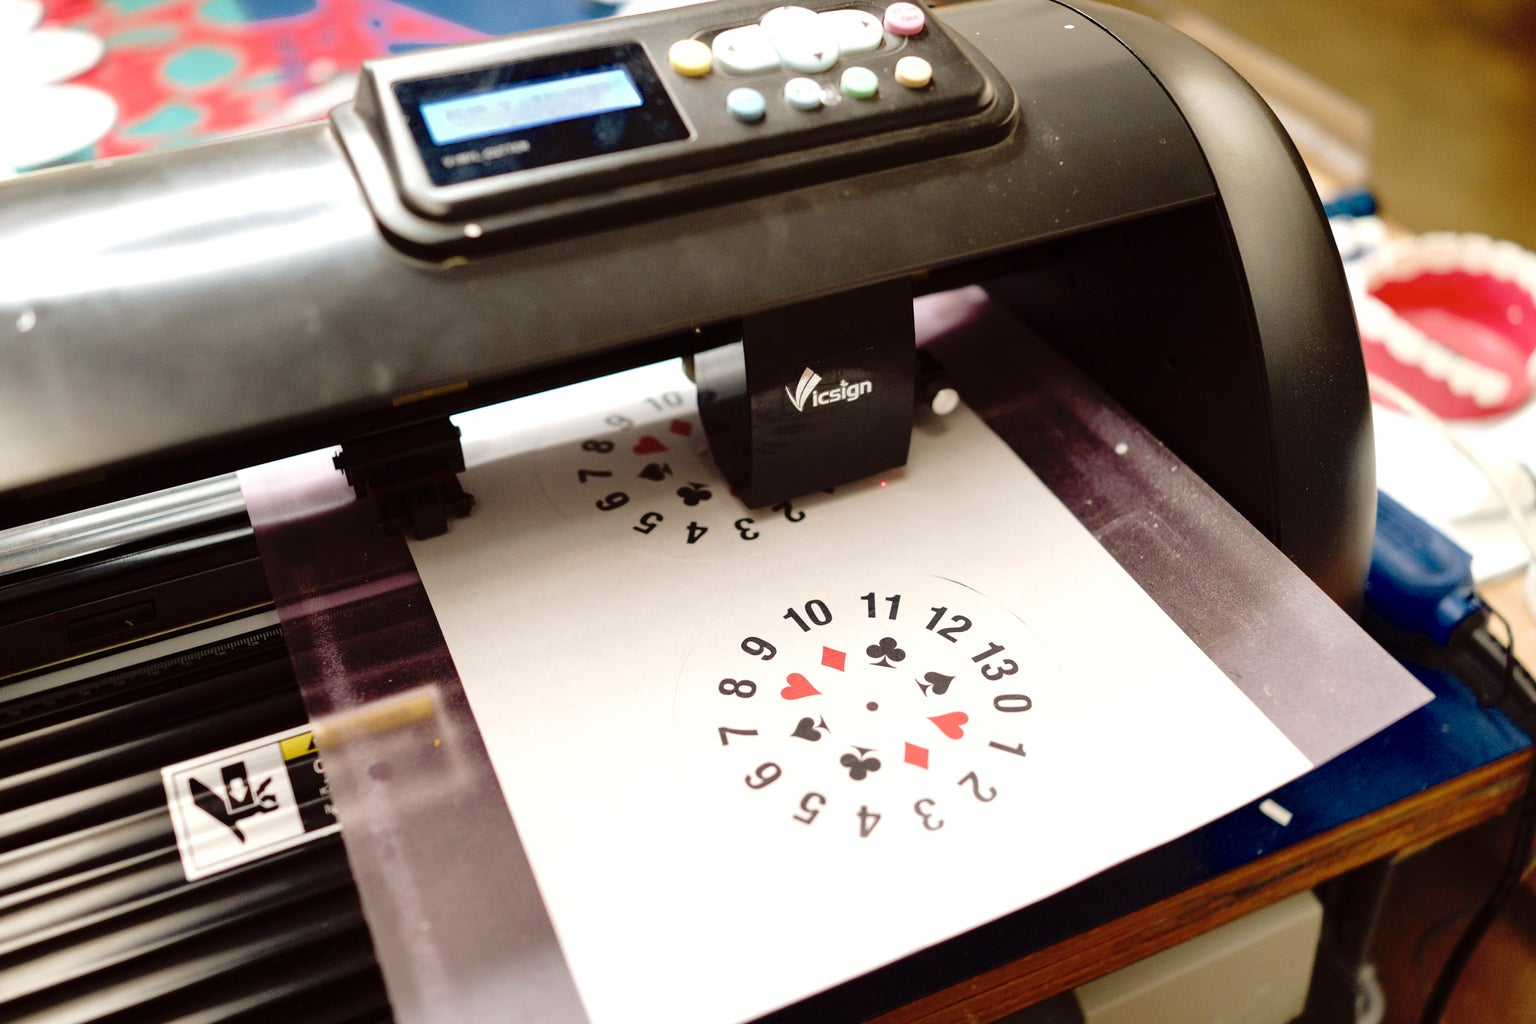 Download and Print the Files